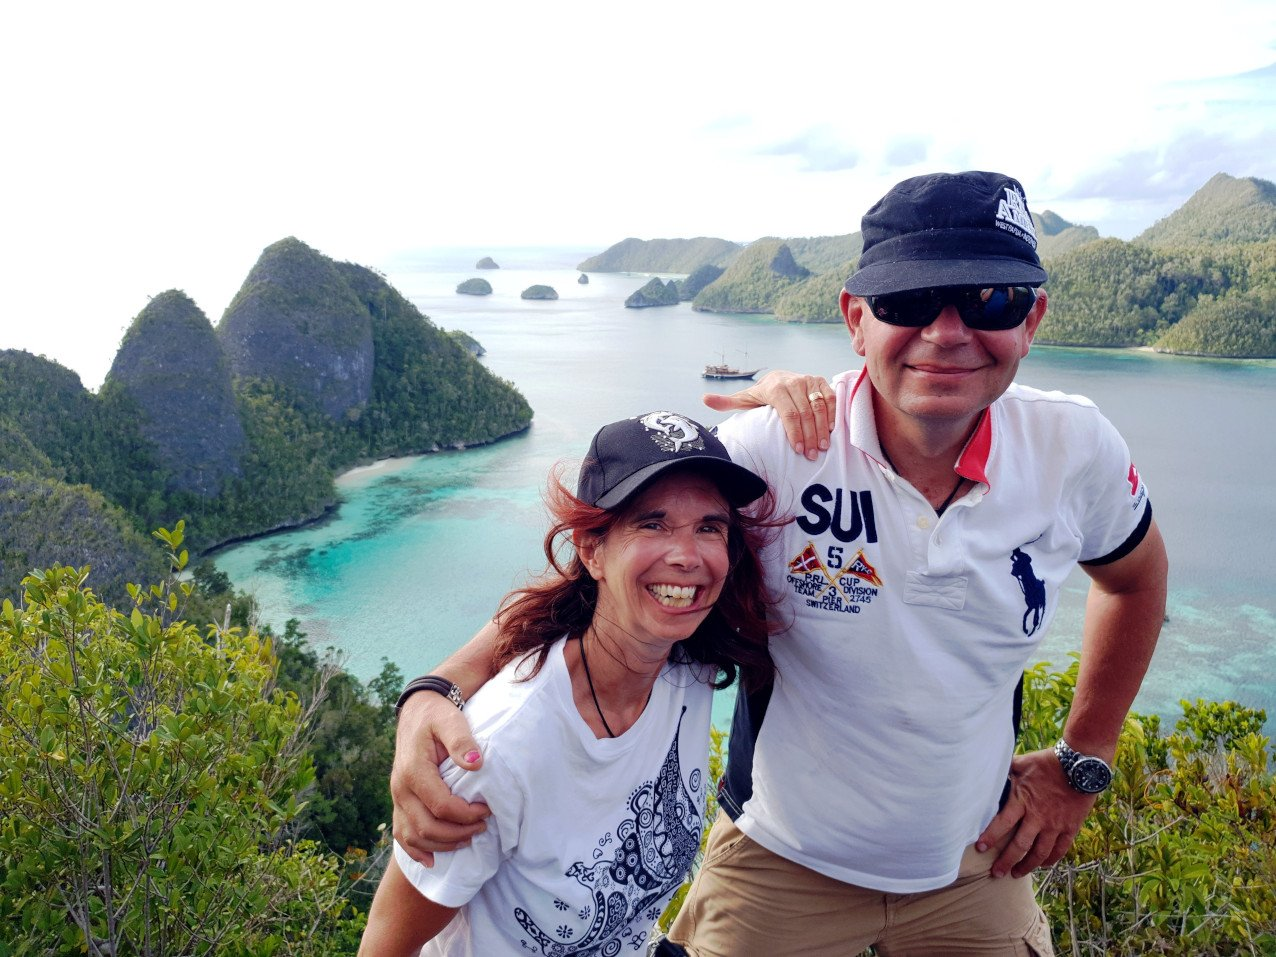 Papua Explorers and Coralia Liveaboard Guests Gabby & Thierry in Raja Ampat at the Wayag viewpoint